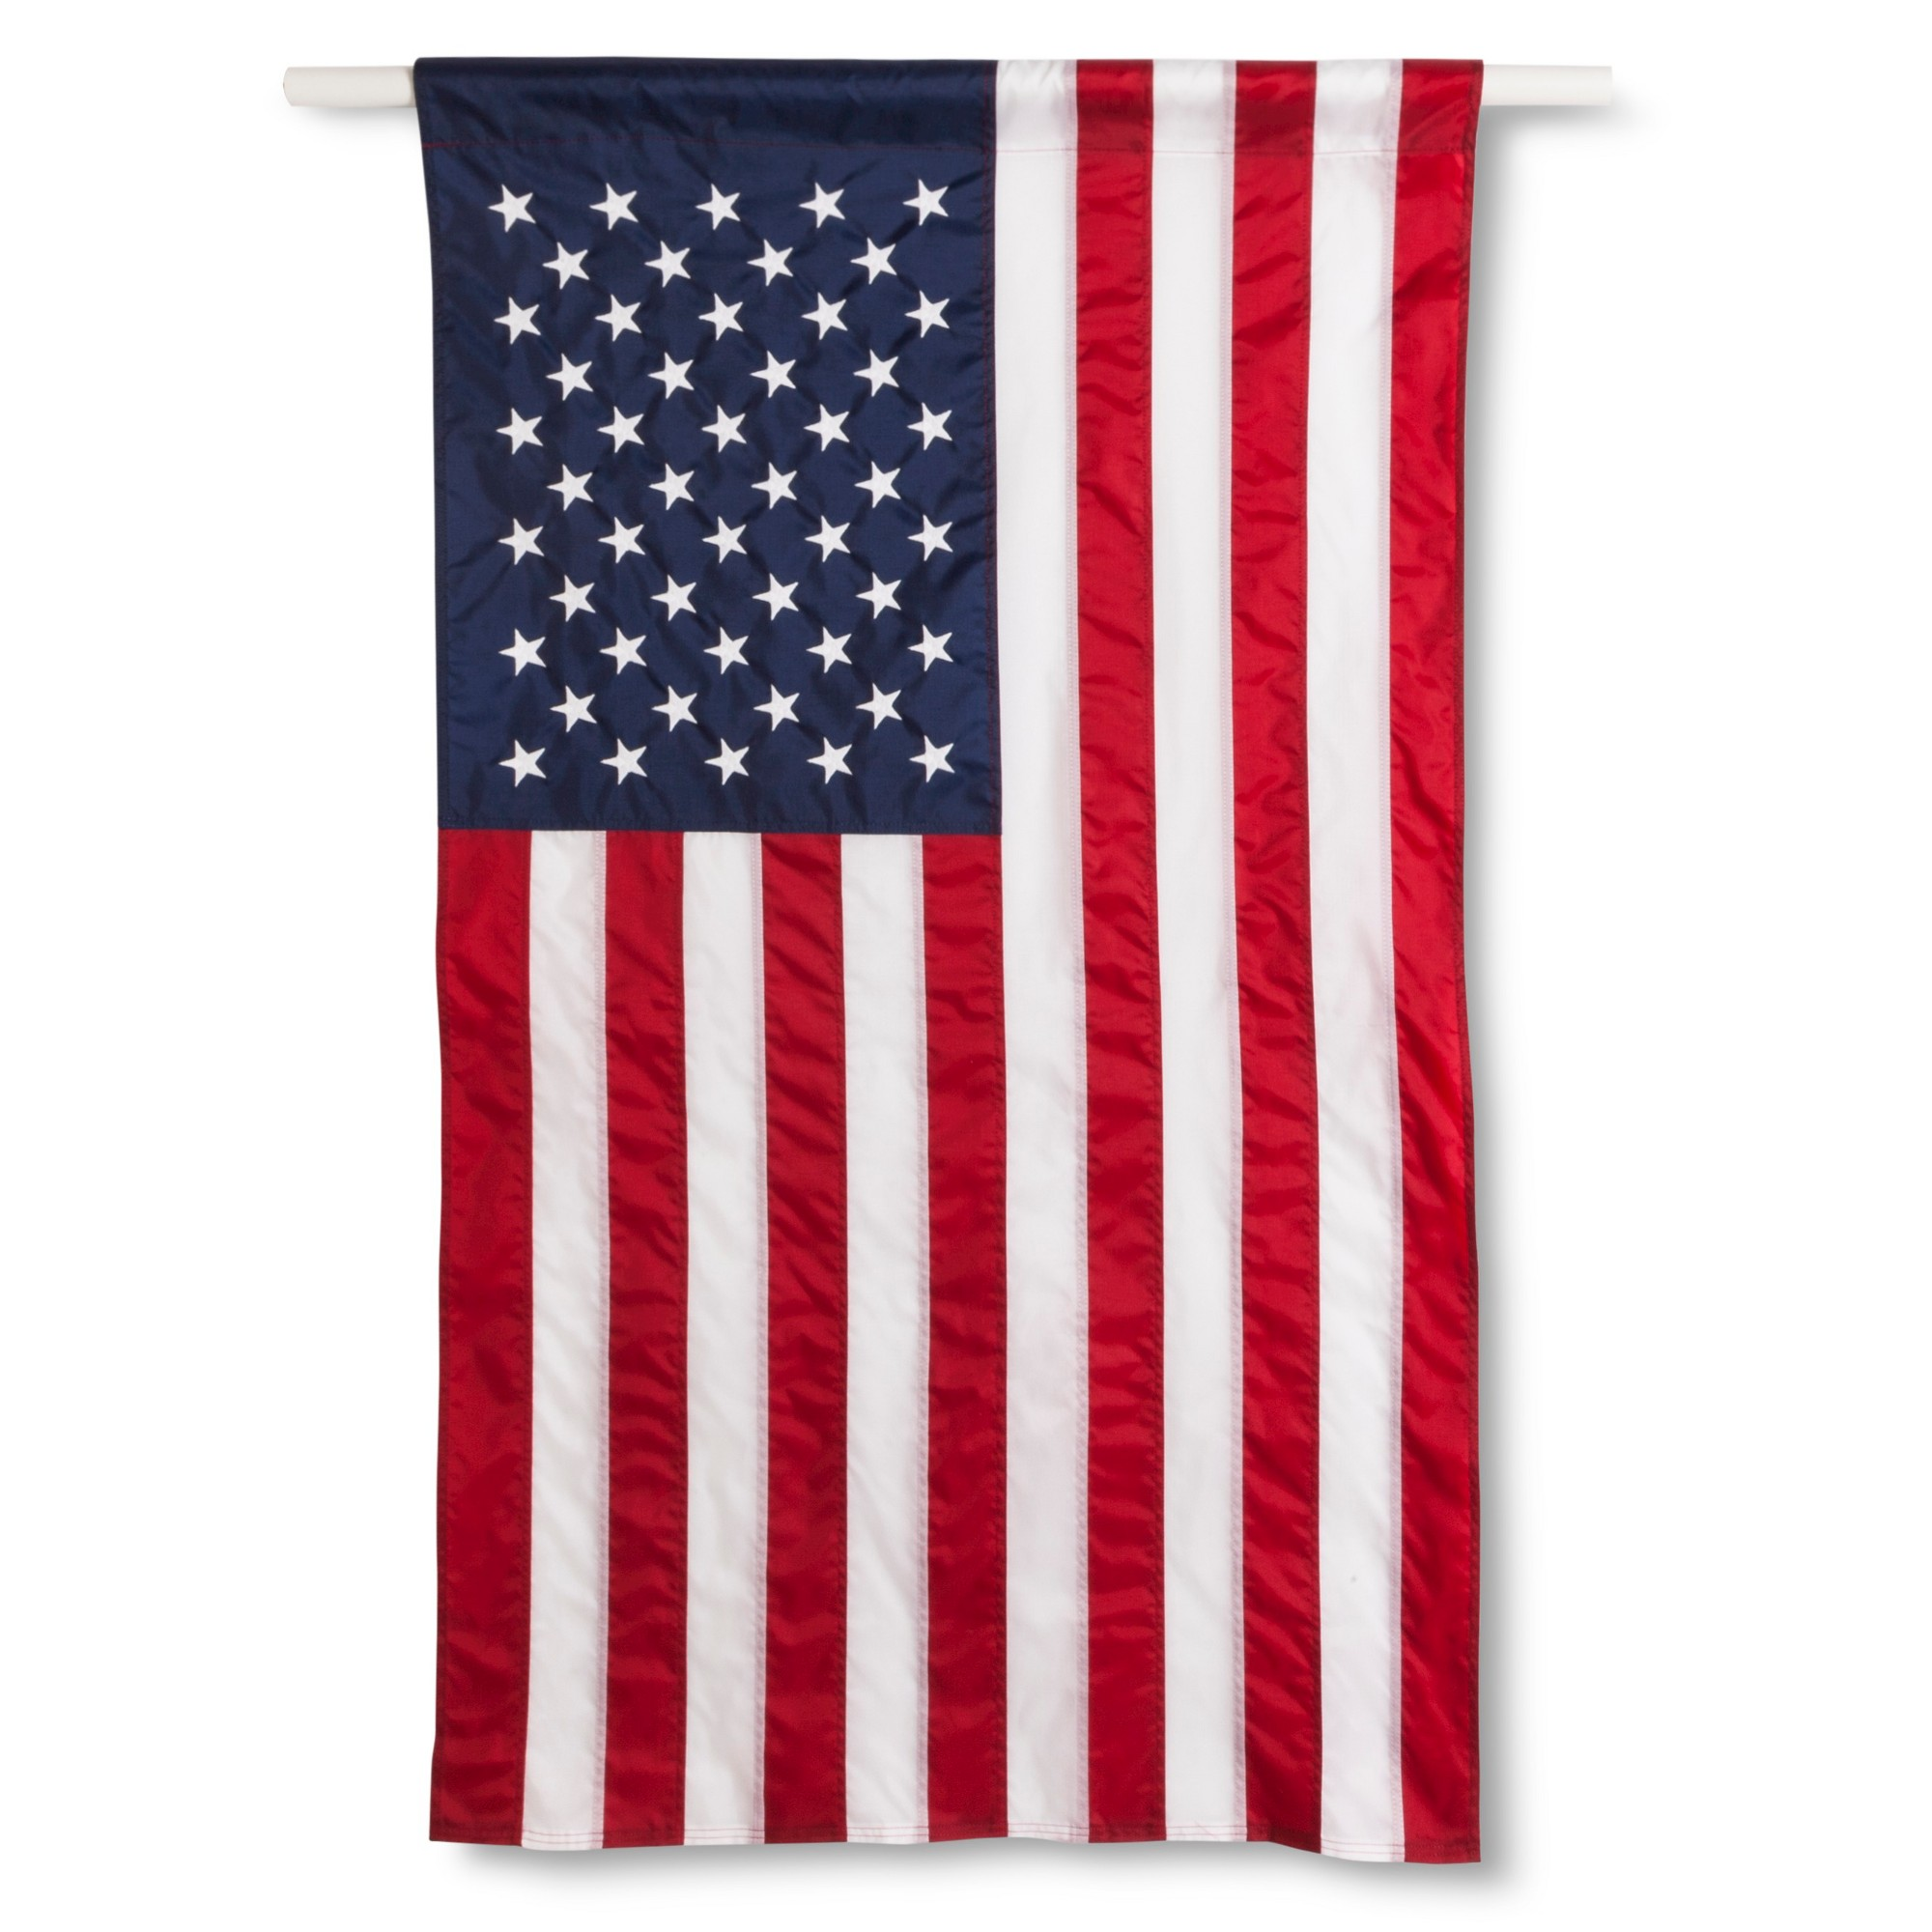 Annin Embroidered American Flag Banner 2 5 X 4 New American Flag American Flag Flag Display